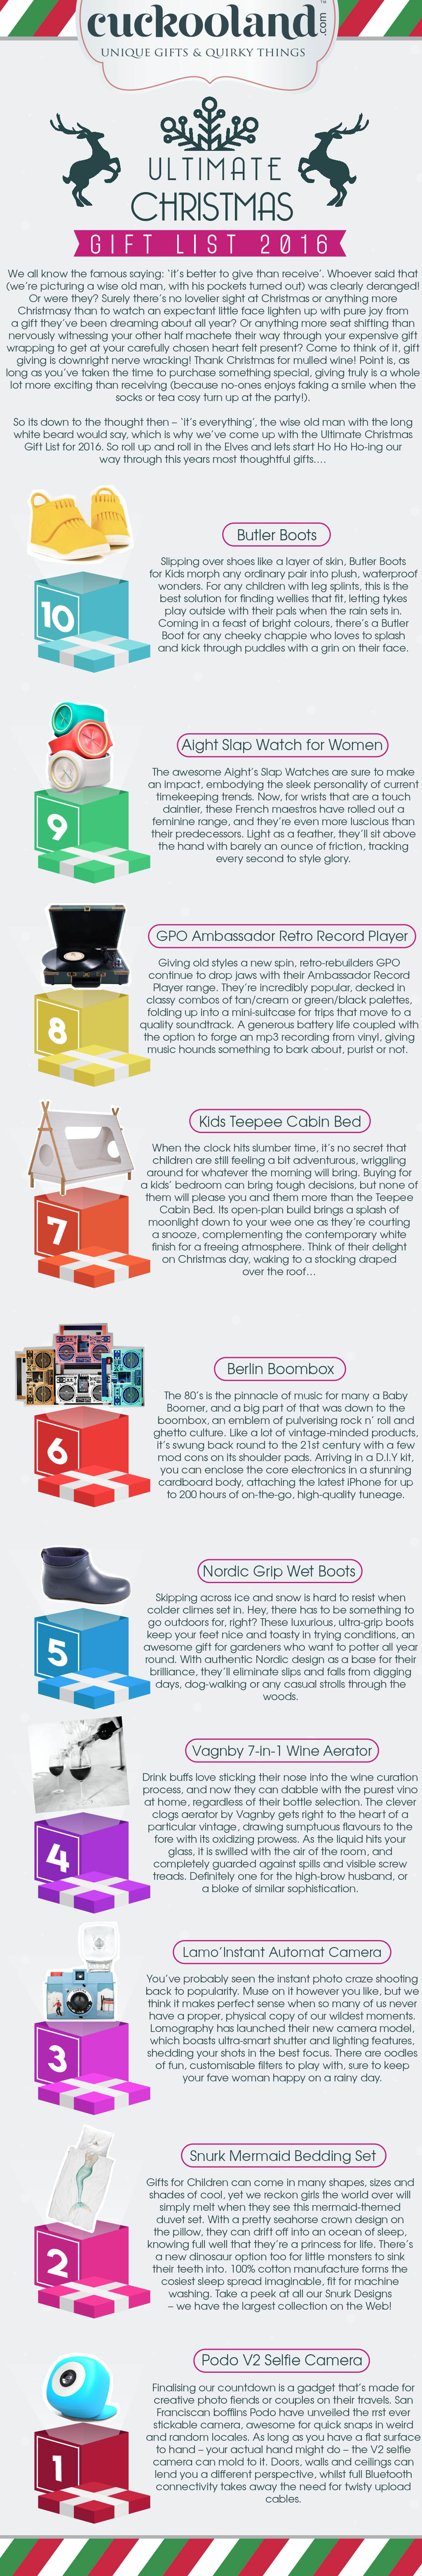 christmas gift ideas 2016 infographic